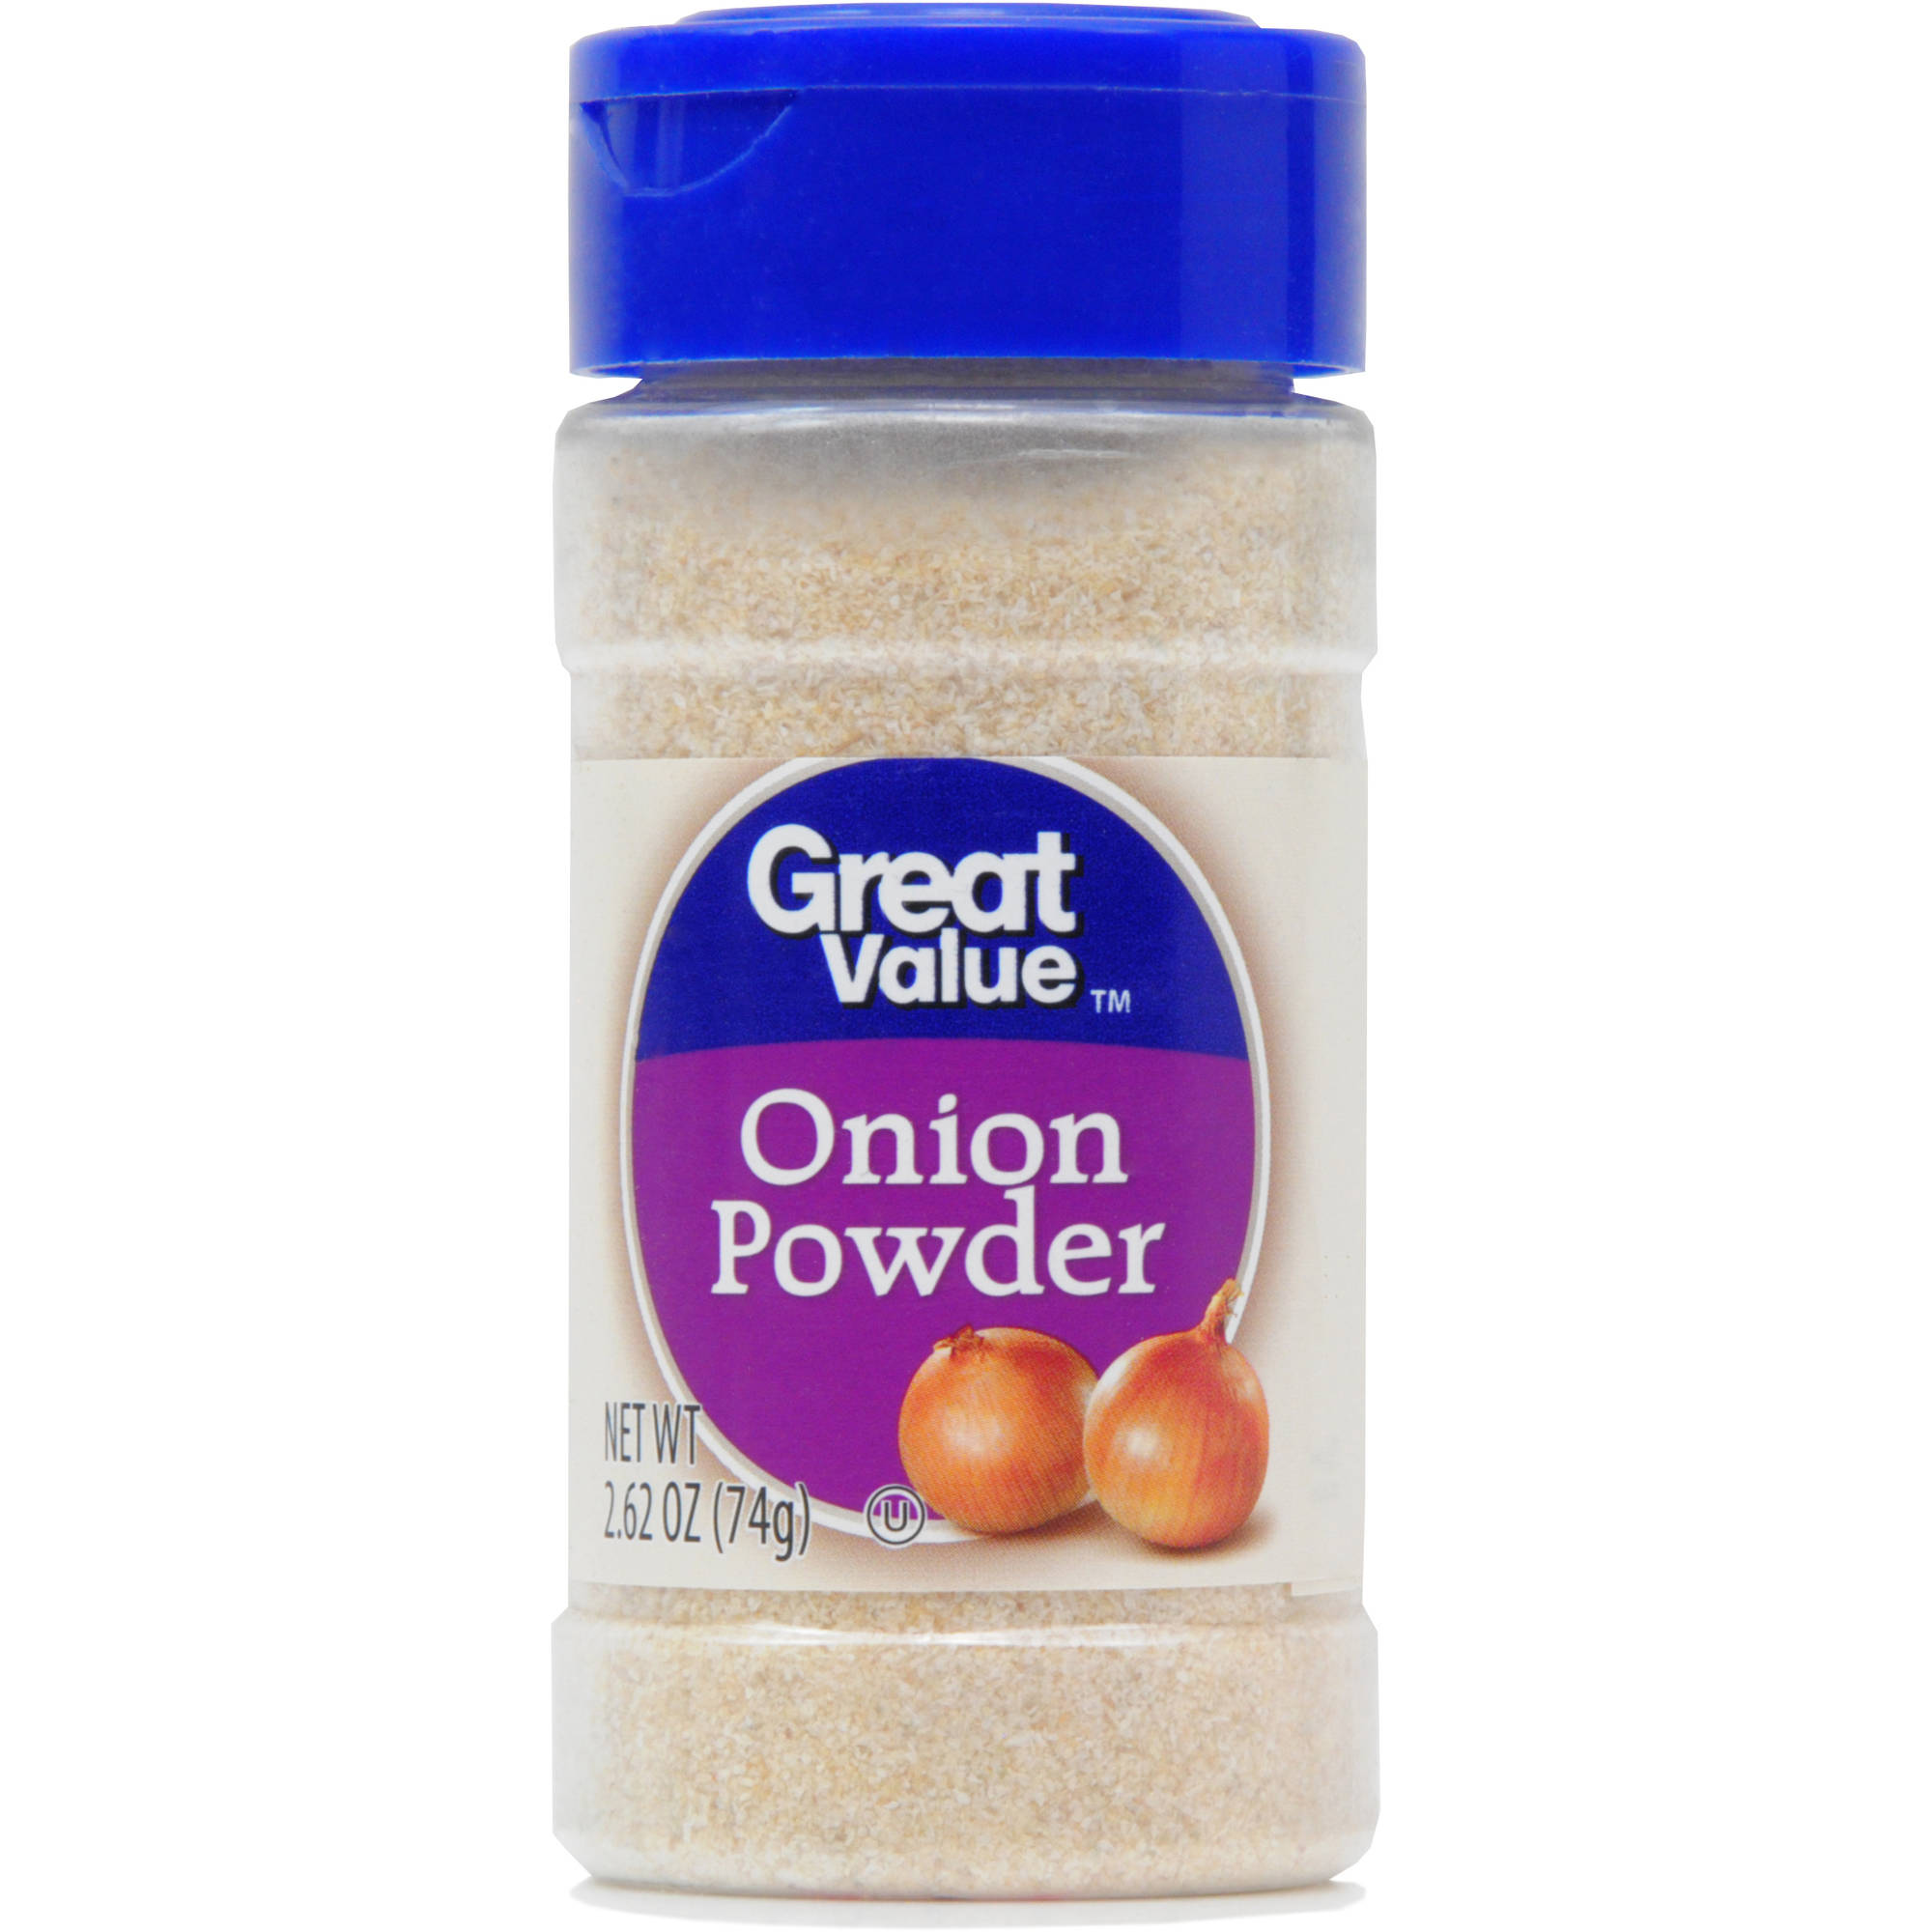 (2 Pack) Great Value Onion Powder, 2.62 oz